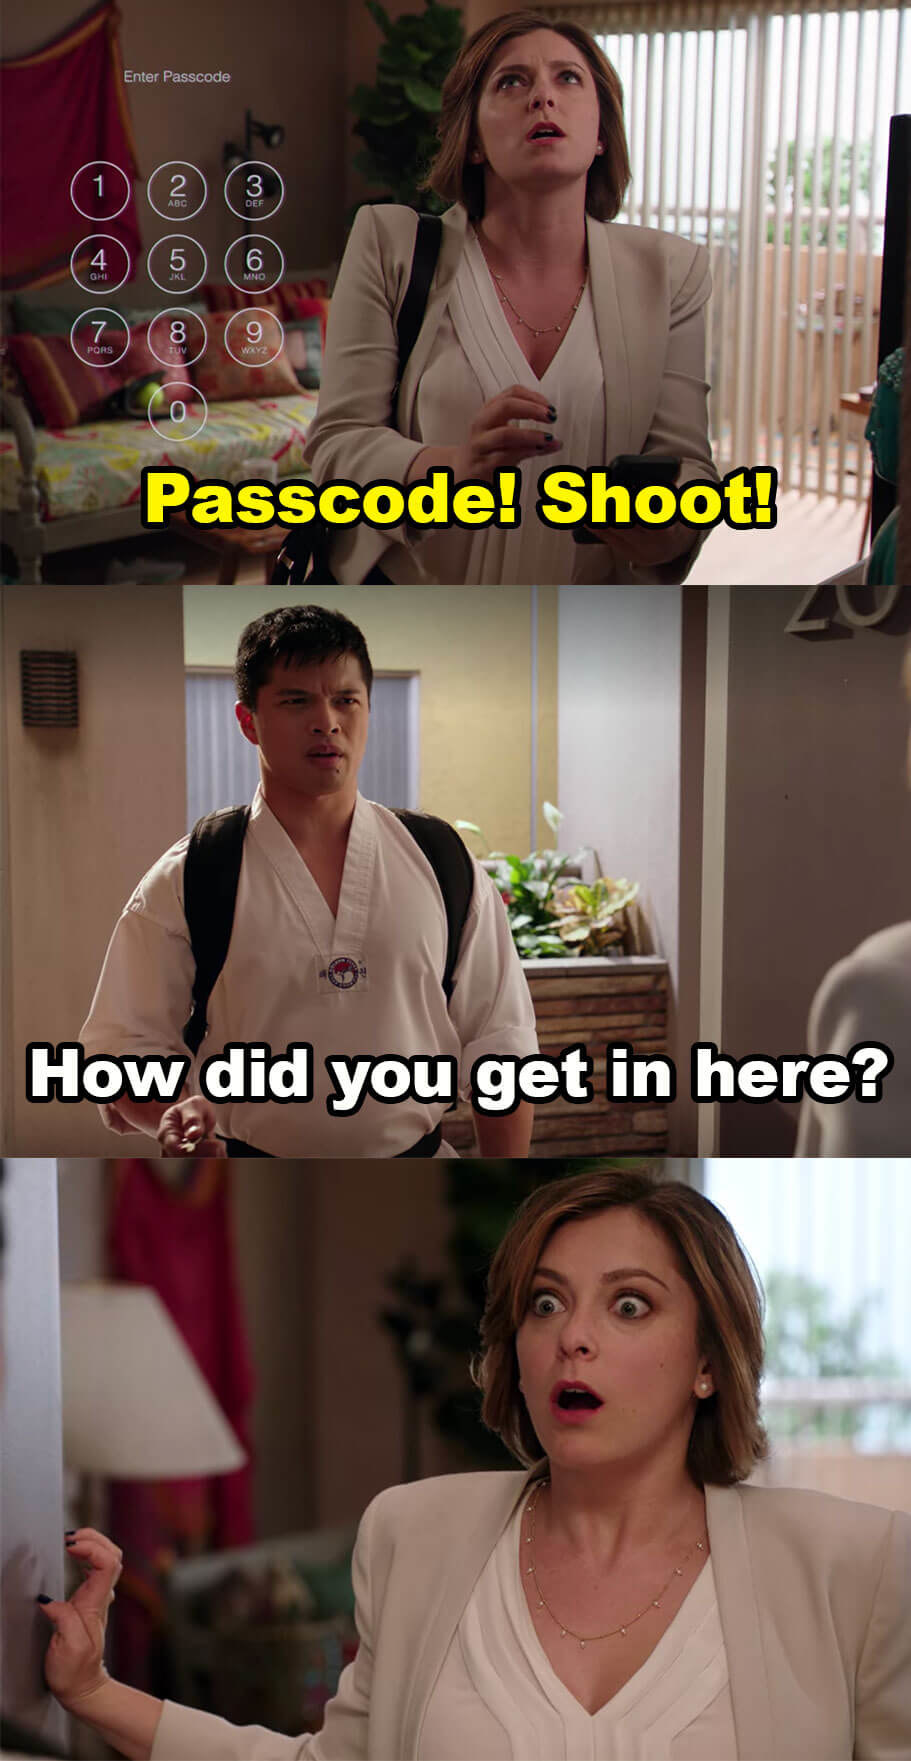 Rebecca is trying to guess Josh's passcode, but Josh comes in and asks how she got in there